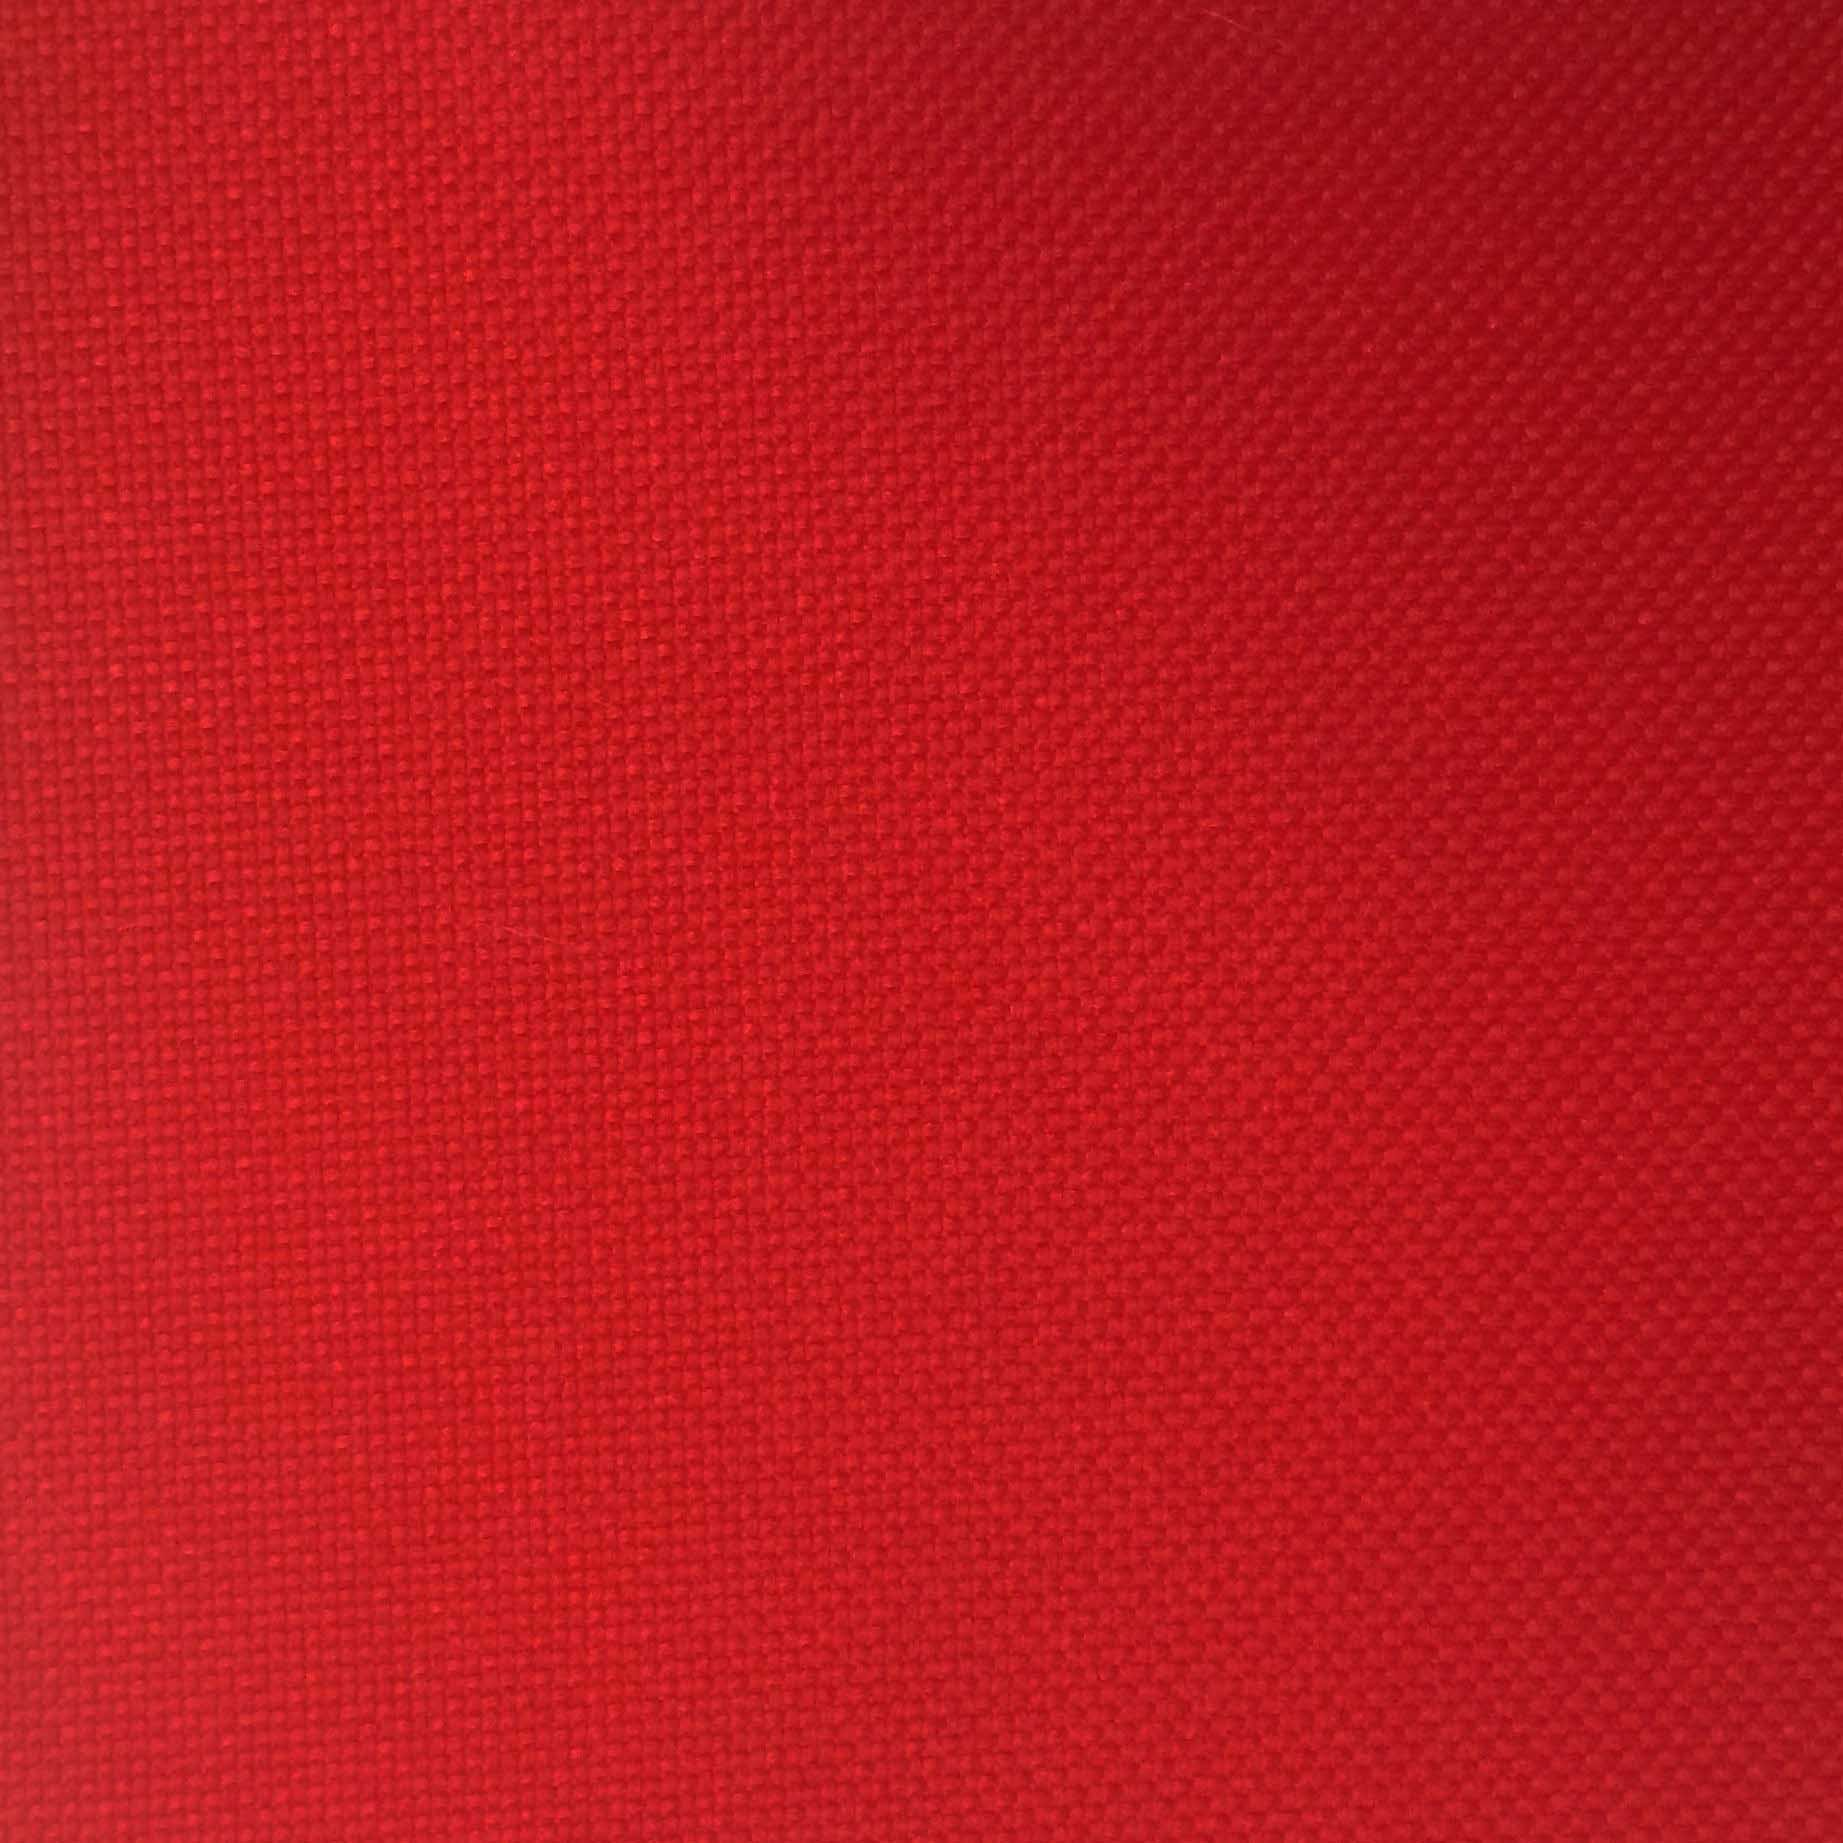 Ottertex Canvas Fabric Waterproof Outdoor 60'' wide 600 Denier 15 Colors sold by the yard (10 YARD, Red) by Ottertex (Image #2)